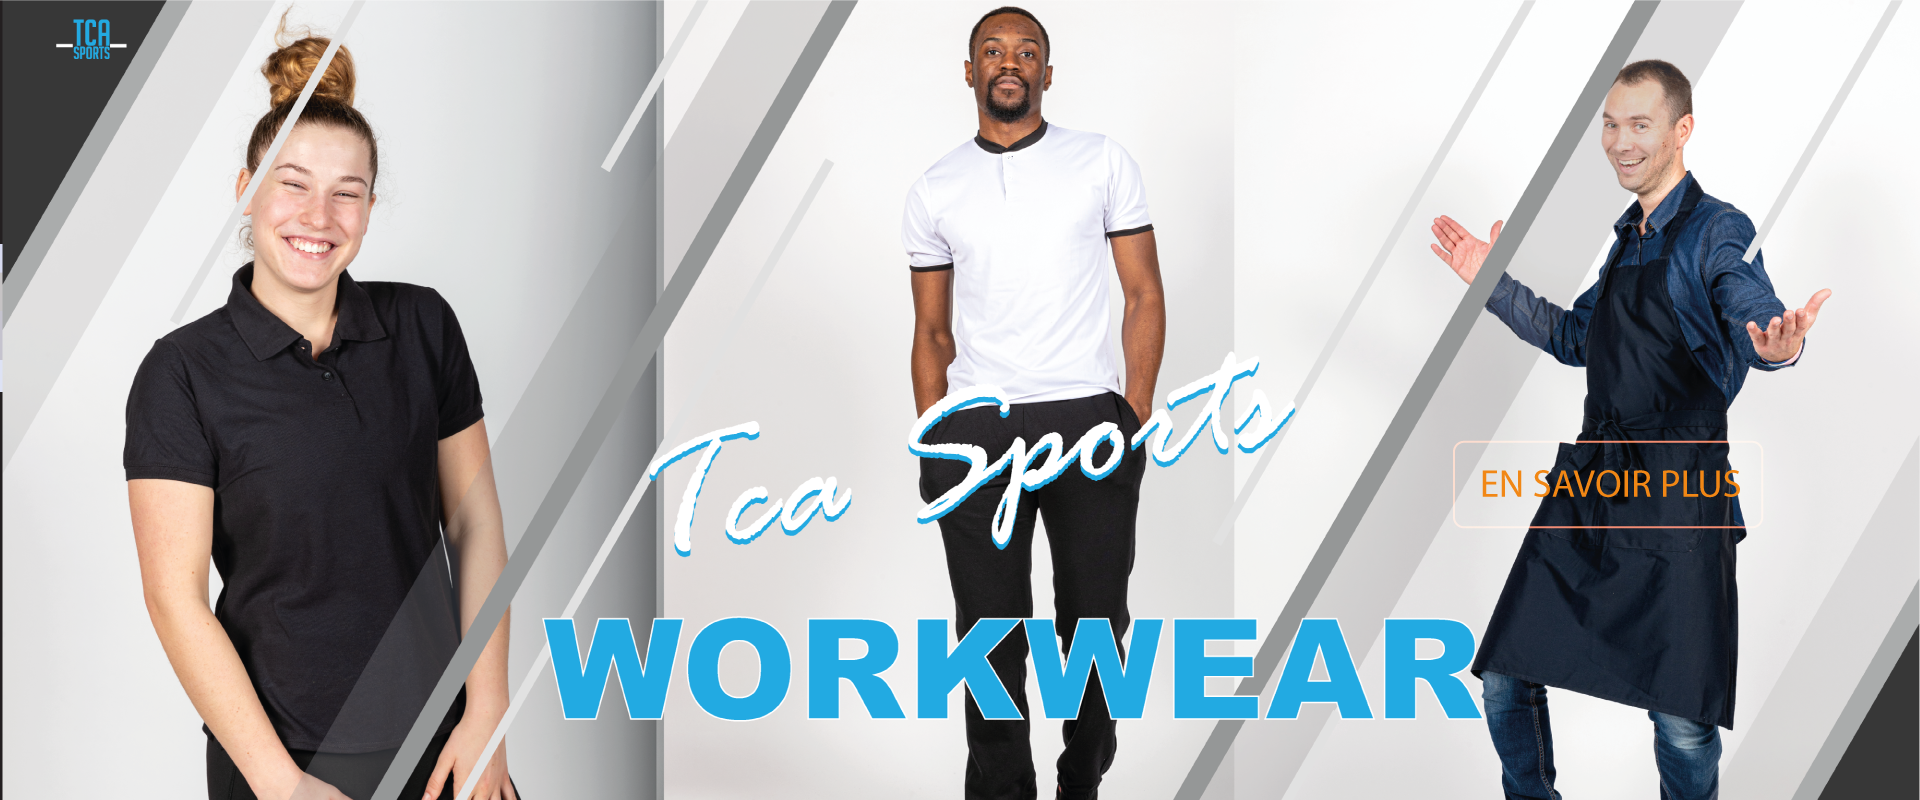 Catalogue Workwear by TCA Sports